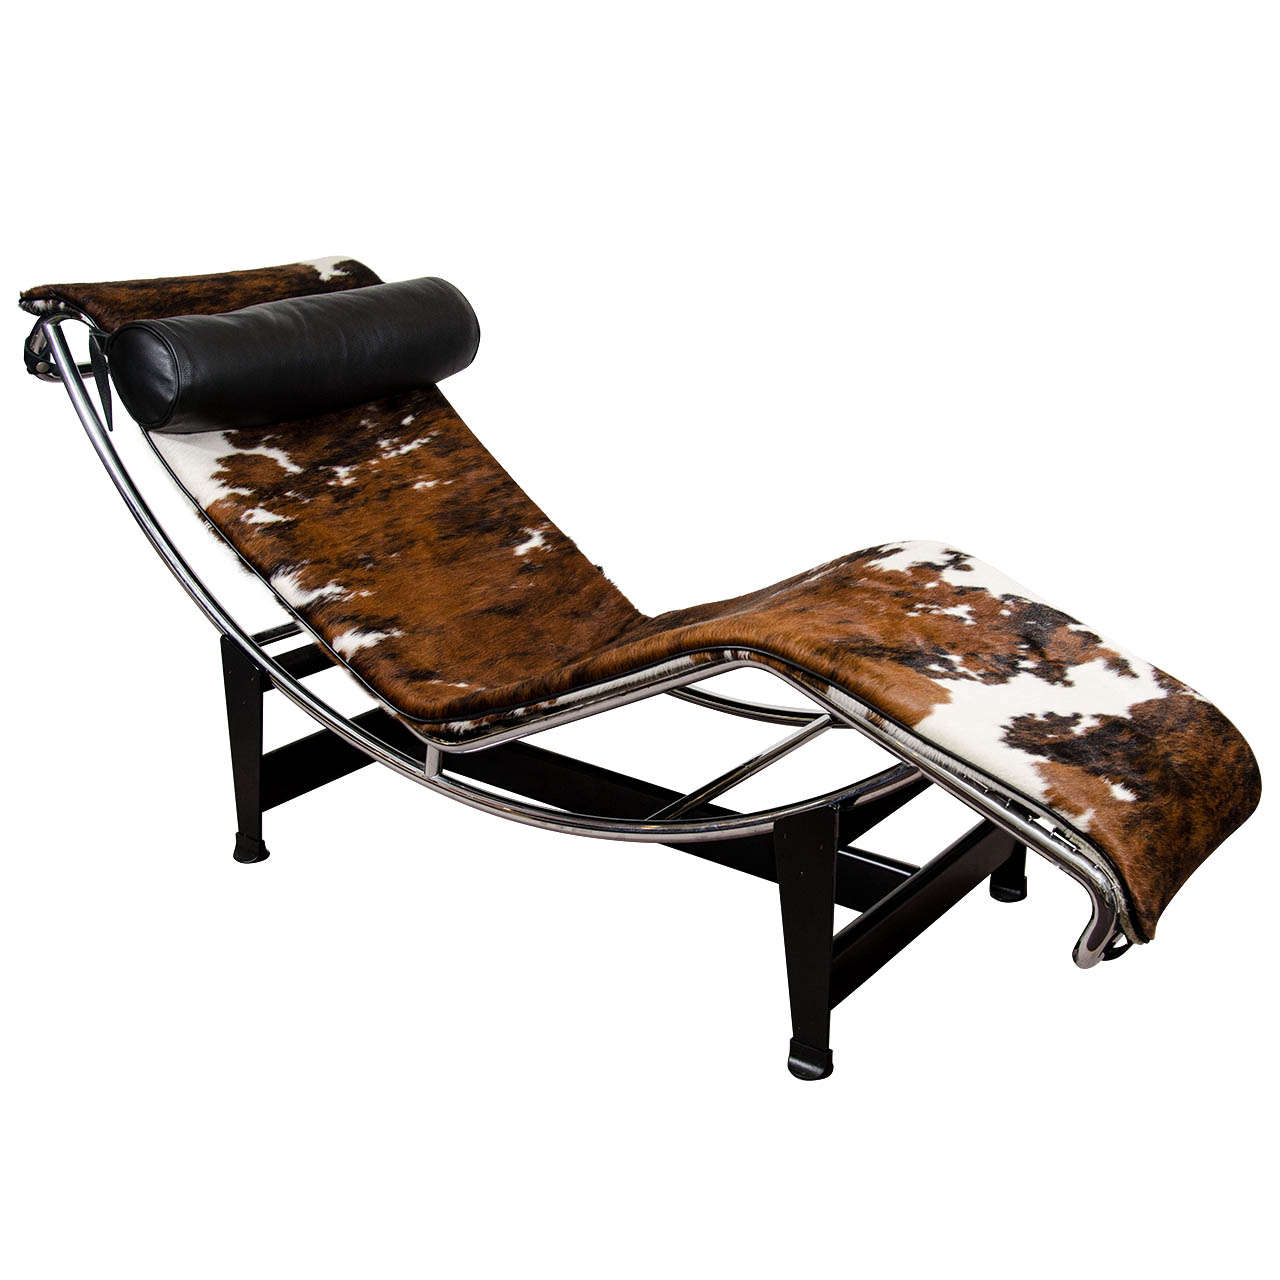 A Mid Century Le Corbusier Lc4 Lounge Chair In Cowhide At